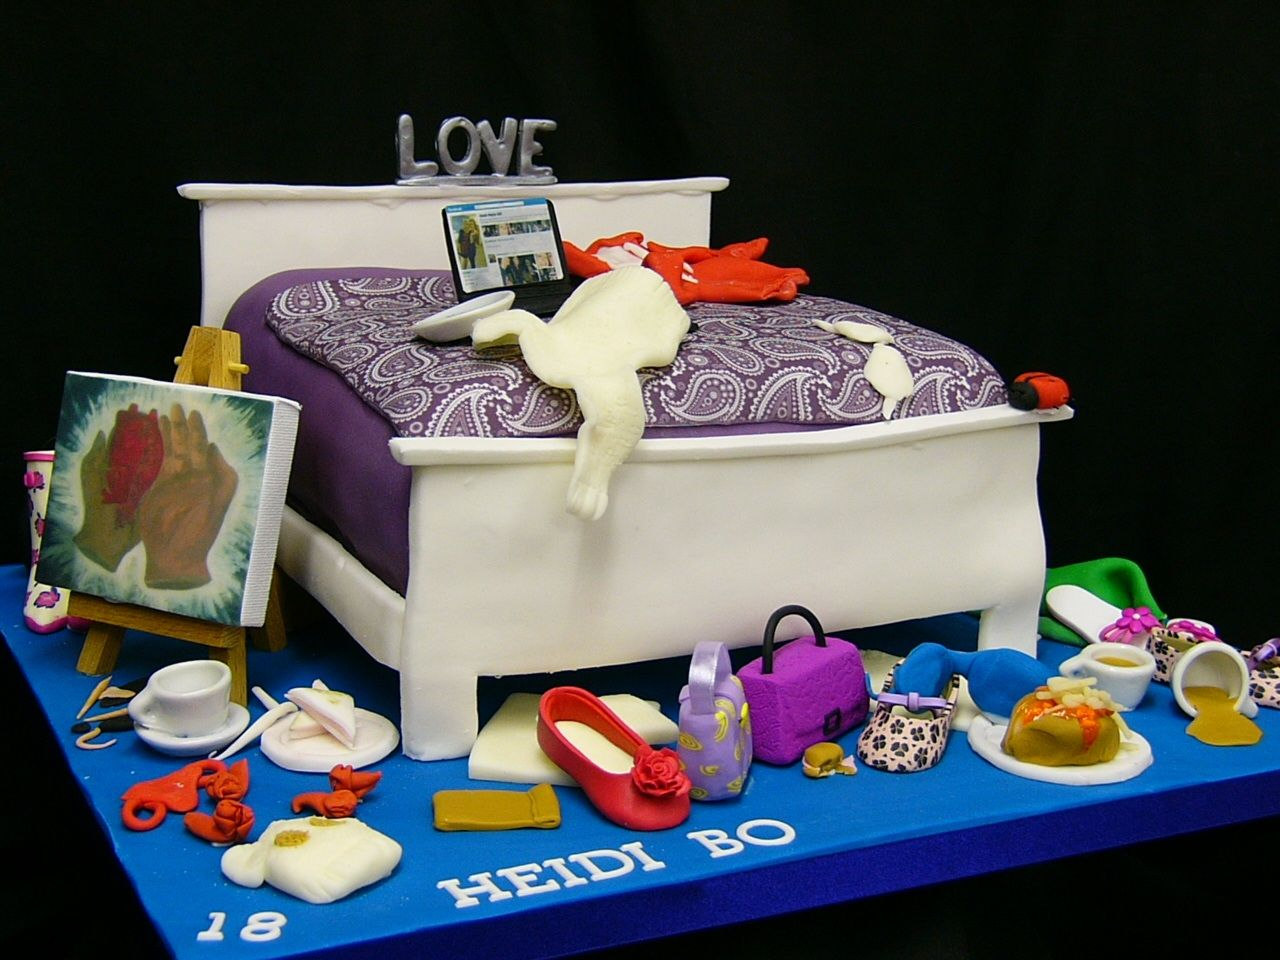 Teenager Messy Bedroom 3d Birthday Cake With Images Bed